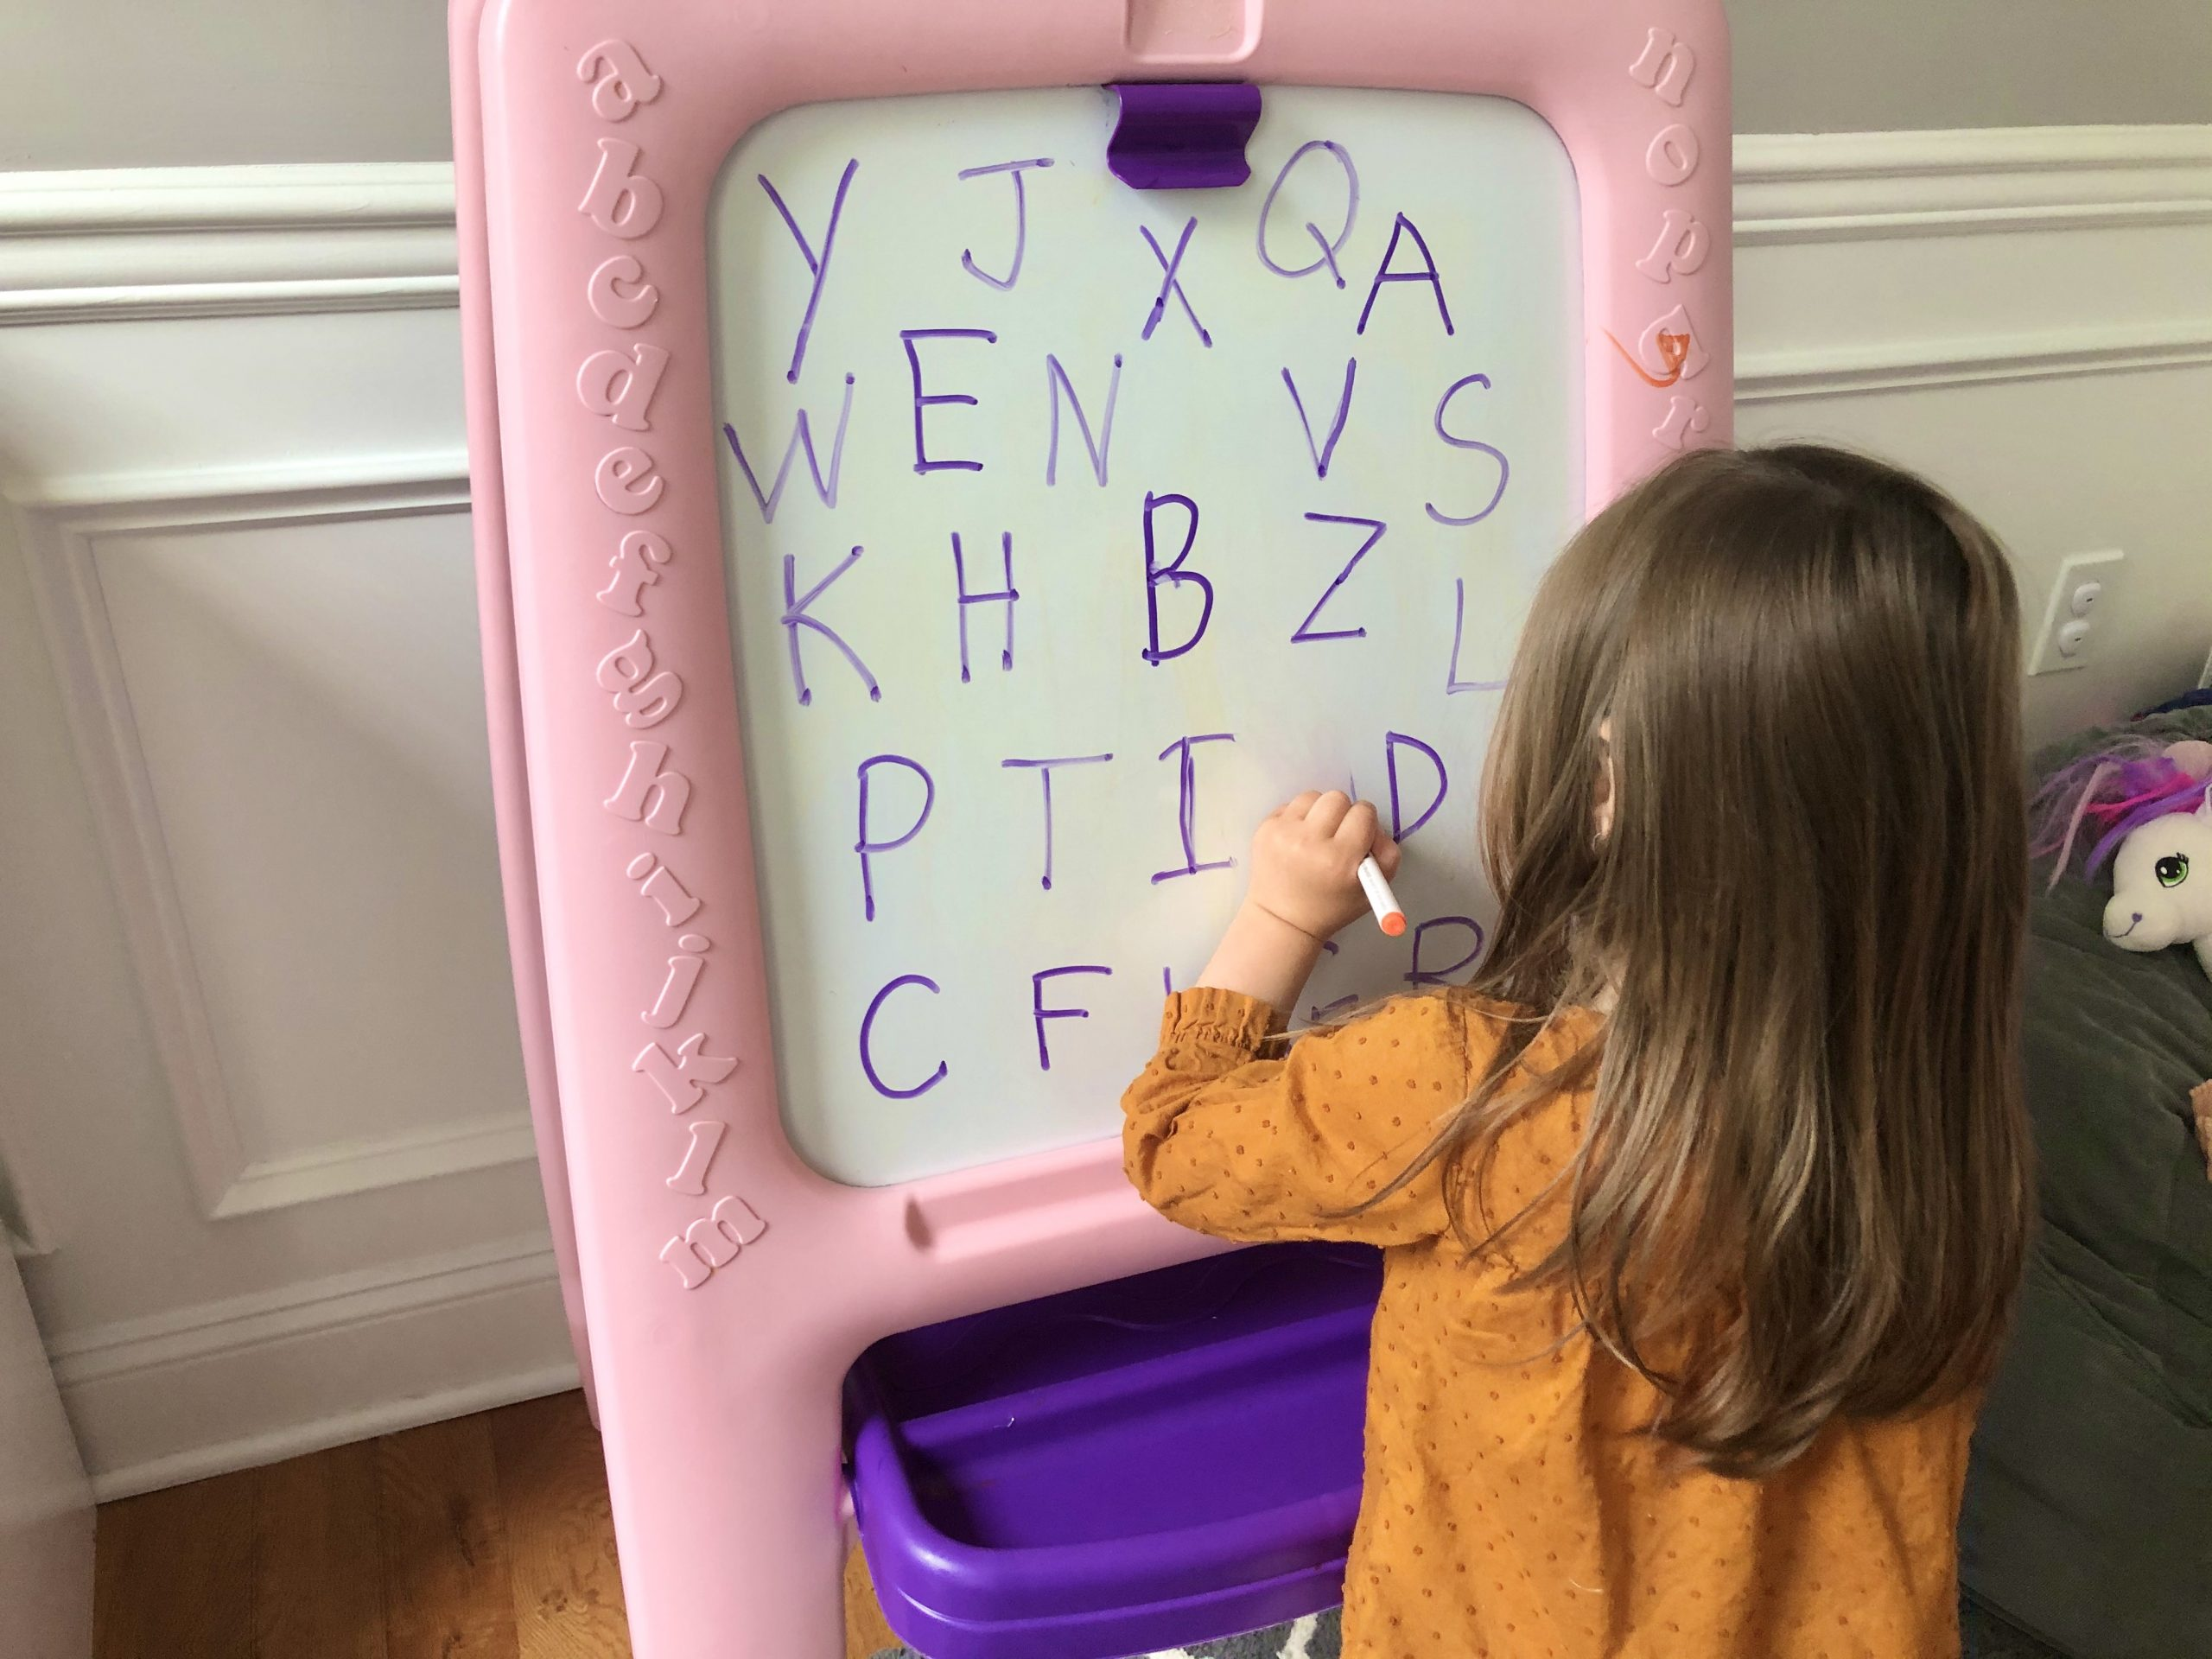 Teach your toddlers letters with this multisensory activity using a dry erase board and eraser. They will learn letter recognition quickly.